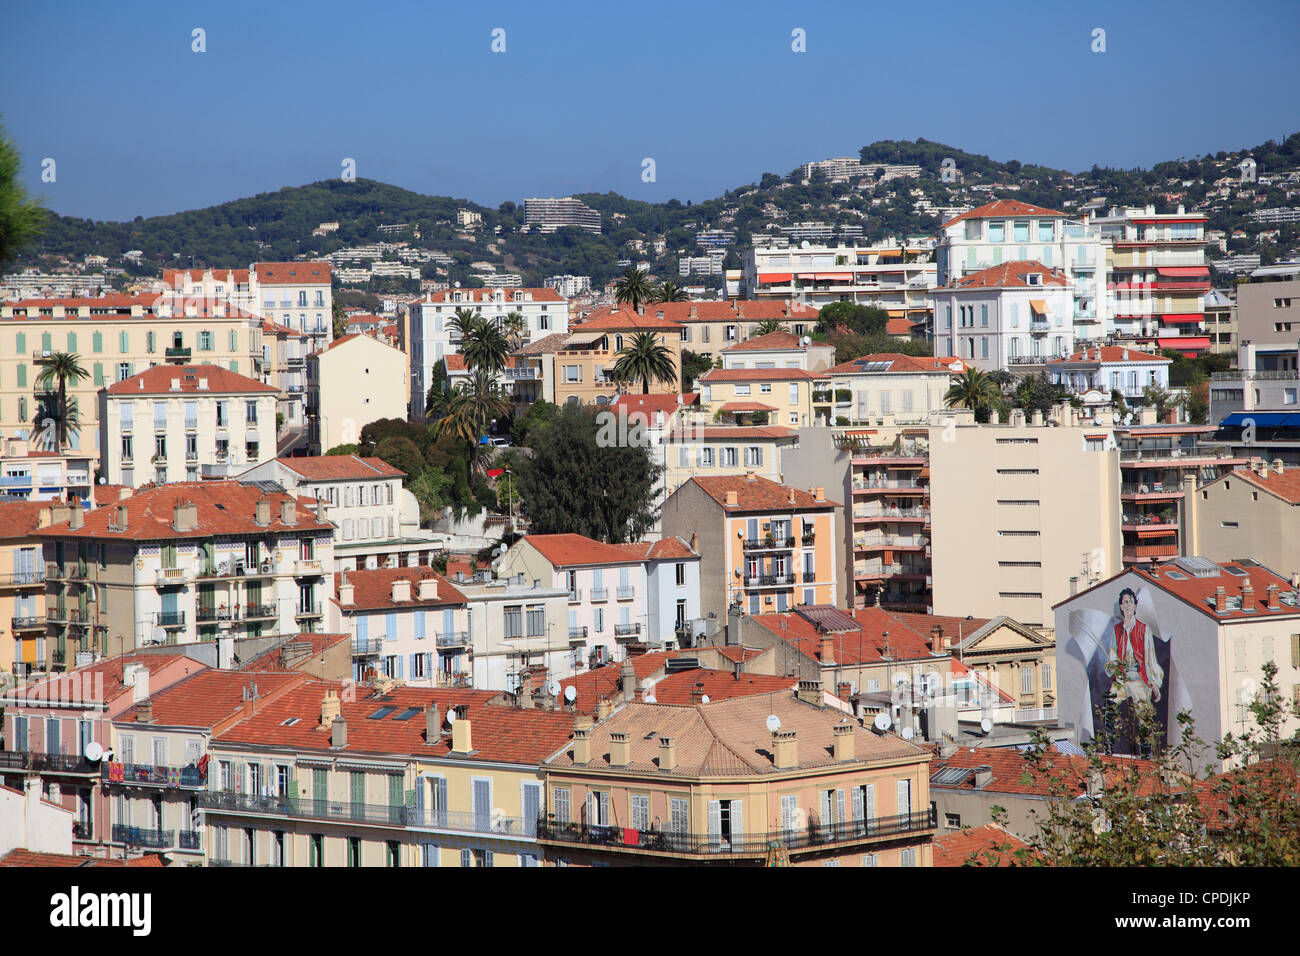 Cannes, Alpes Maritimes, Cote d'Azur, French Riviera, Provence, France, Europe - Stock Image